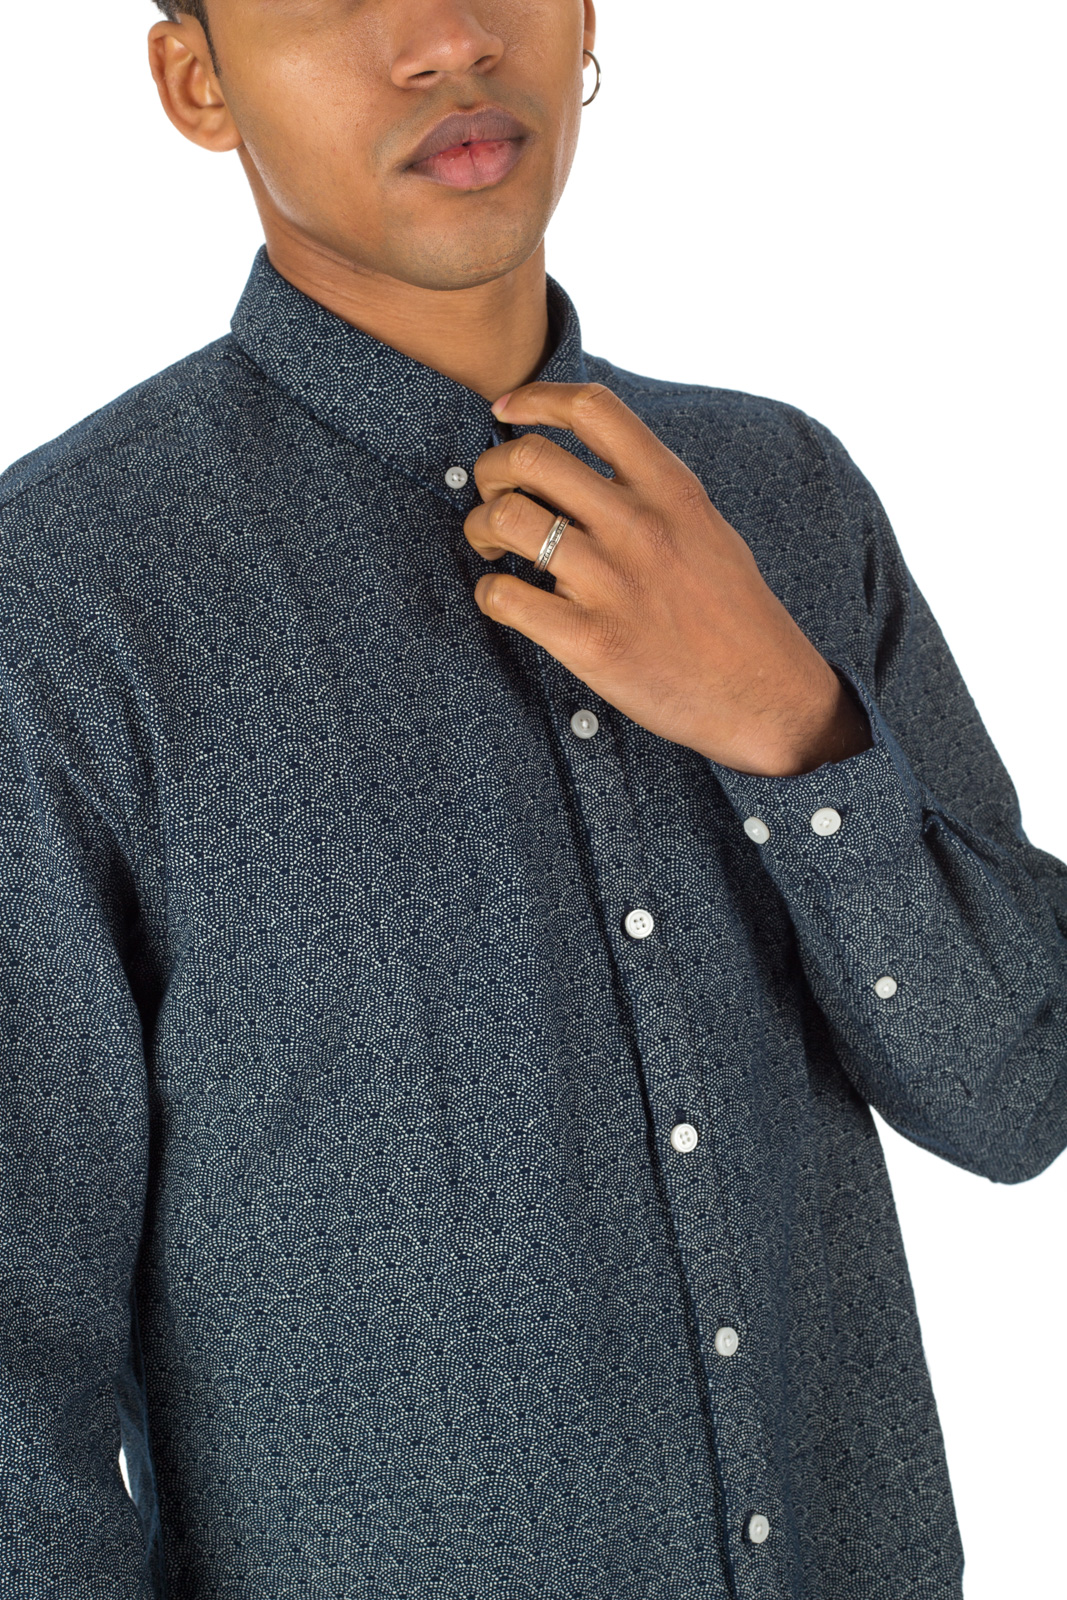 Minimum - Blue Miro shirt with decorations